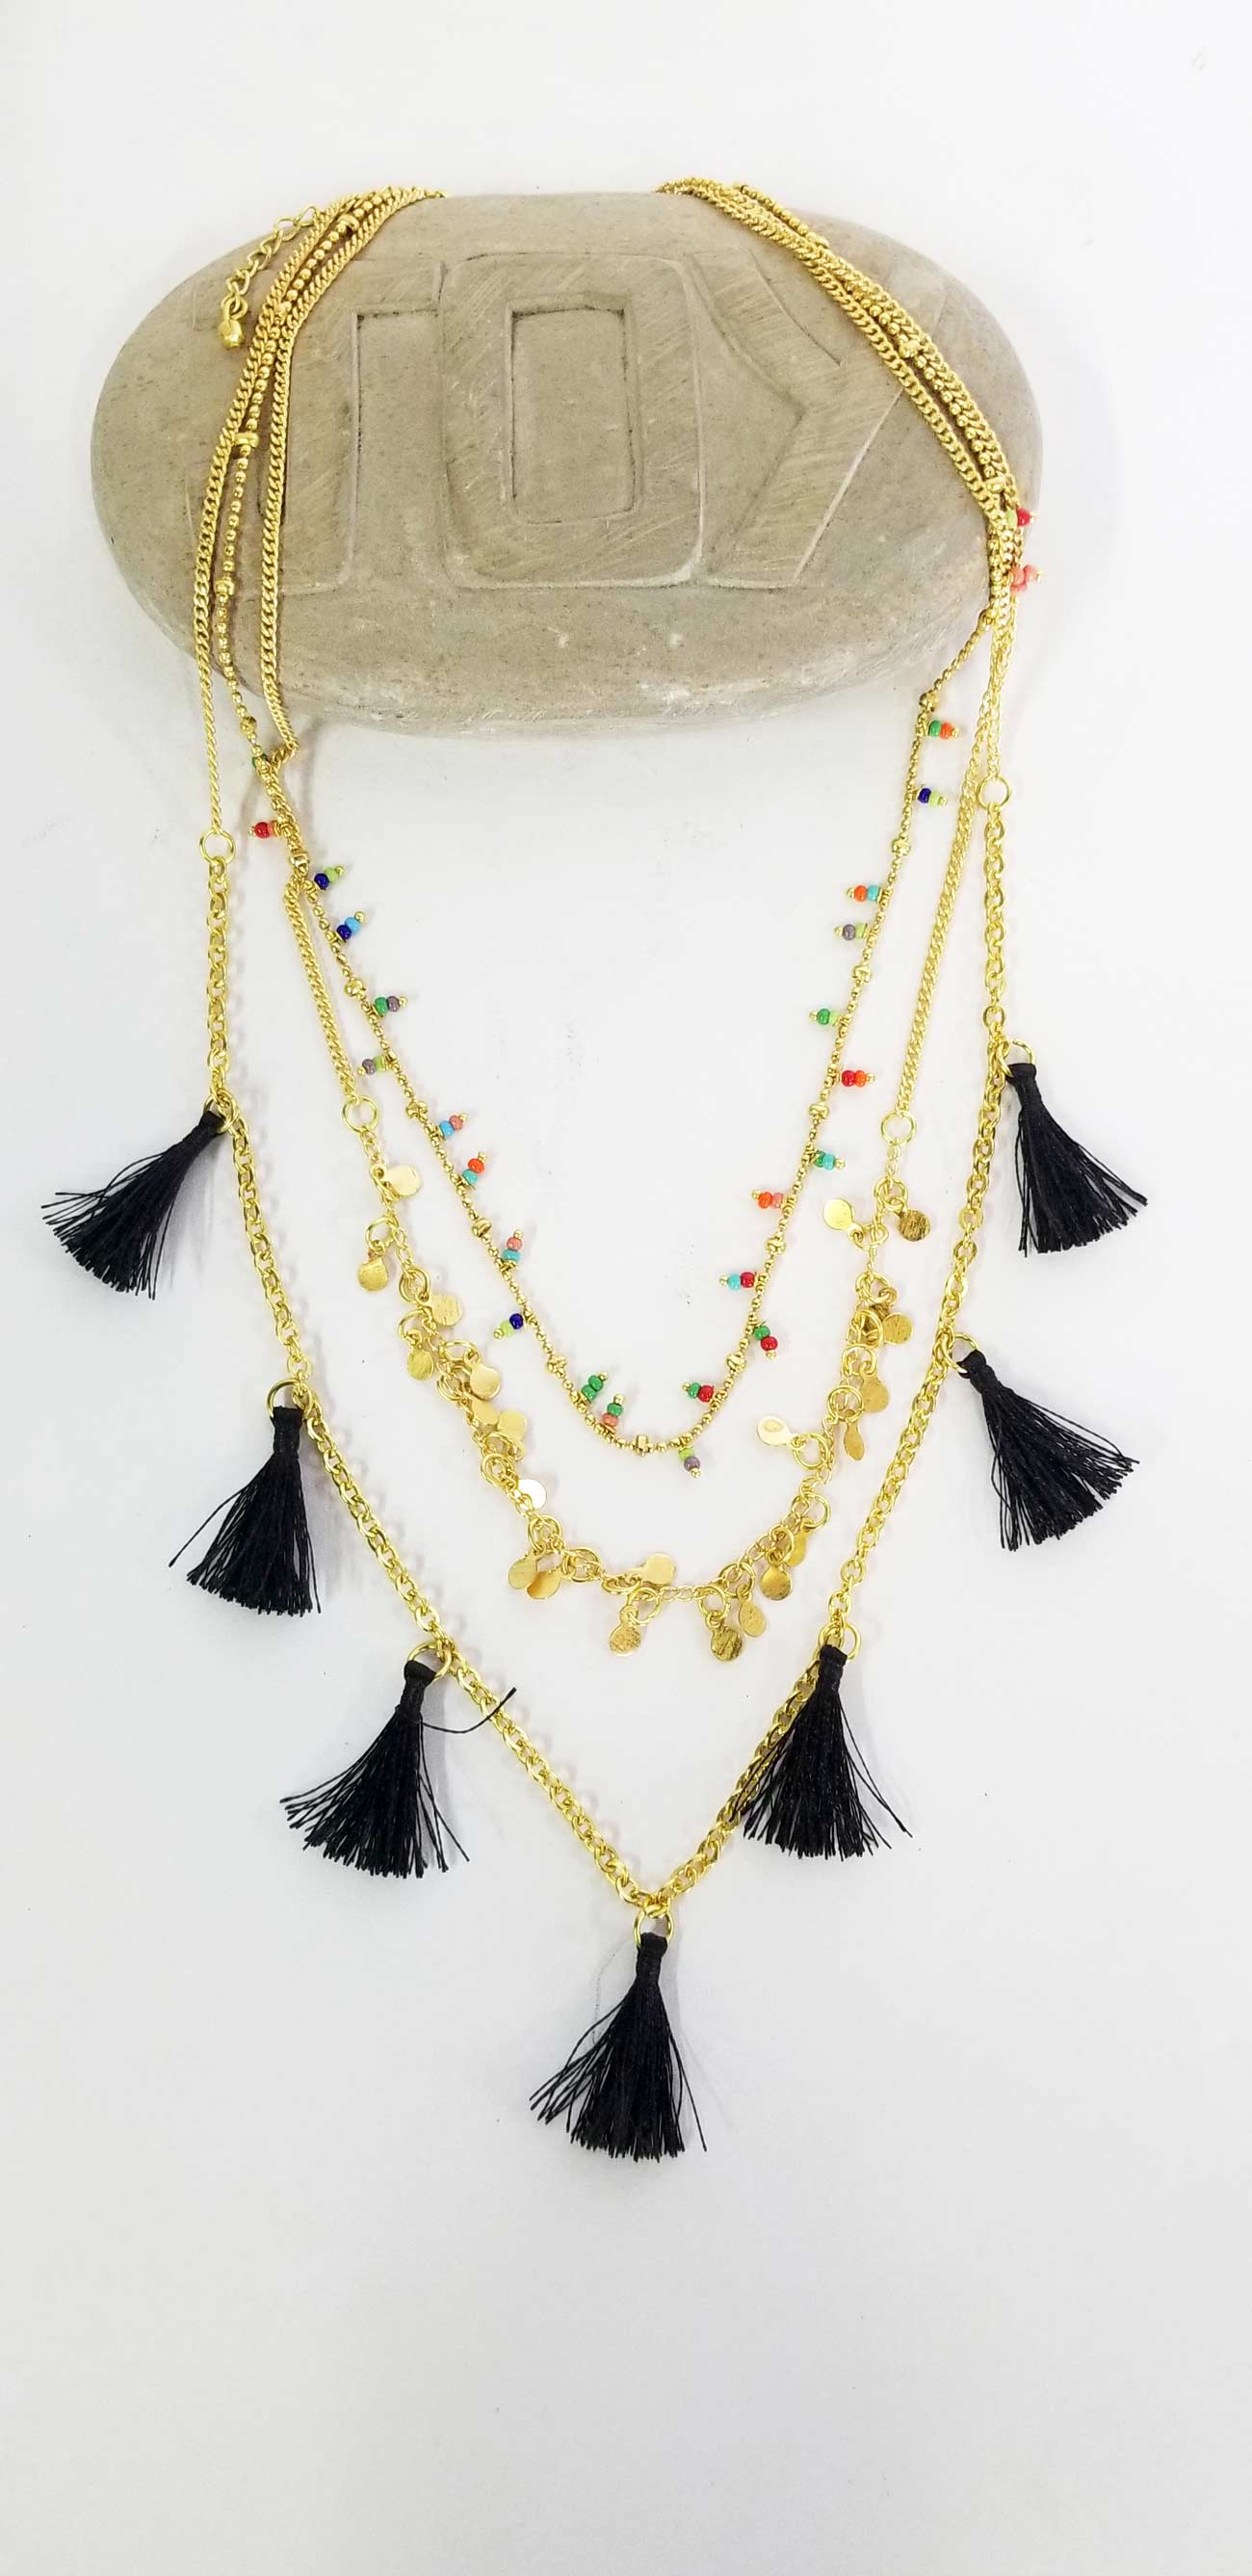 Accessories | Mala | Necklace Three Layers Tassels